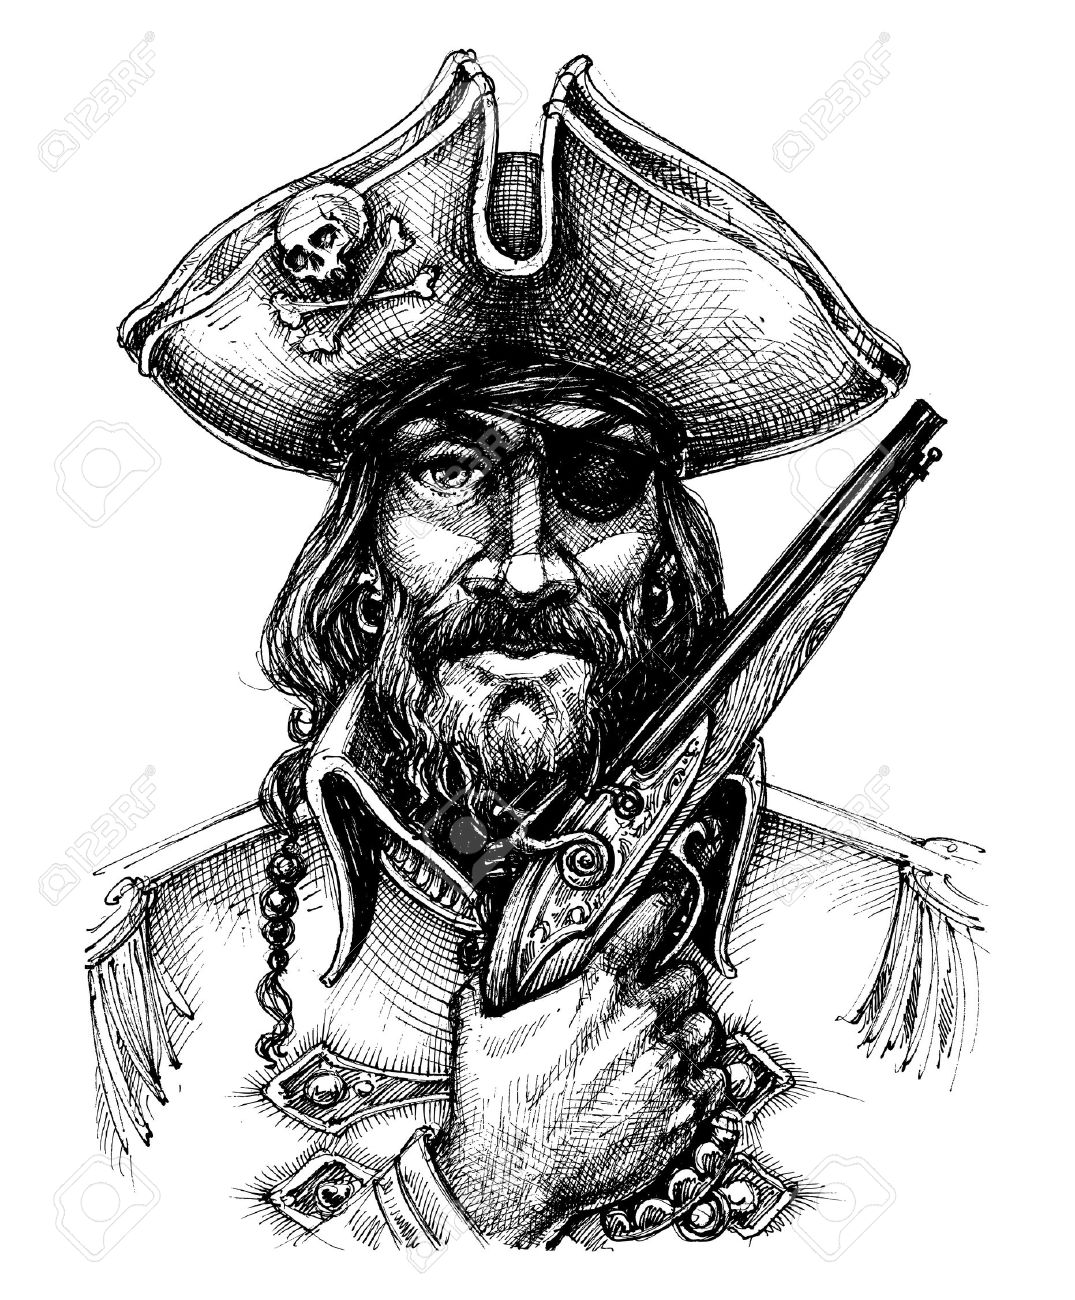 Pirate portrait drawing - 69401393